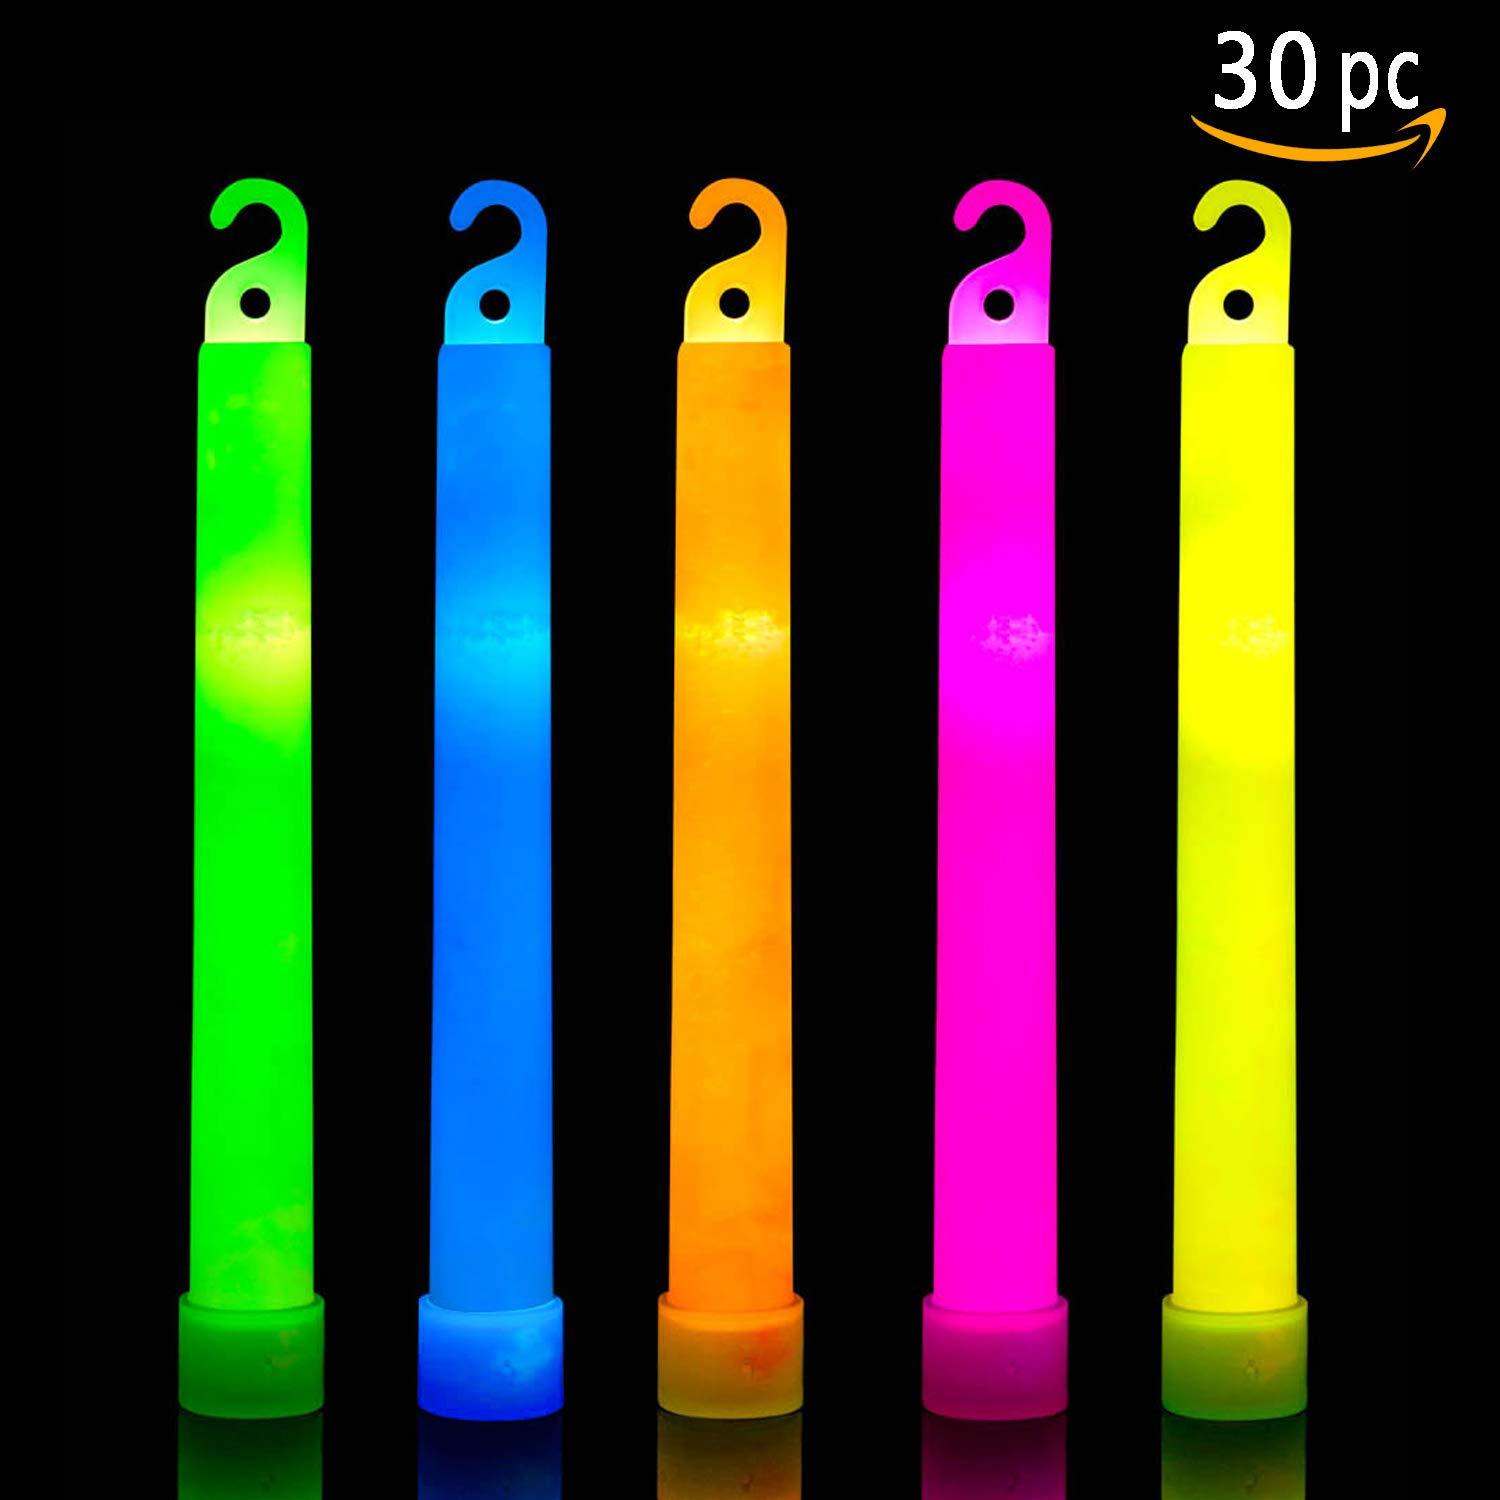 30 Ultra Bright Glow Sticks Plus 30 Party Strings - Total 60 Pcs - Bulk Pack Industrial Grade - 6 Inch Waterproof Glow Stick - Glow Light With 12 Hour Duration - Mixed Colors - Bend, Shake To Activate